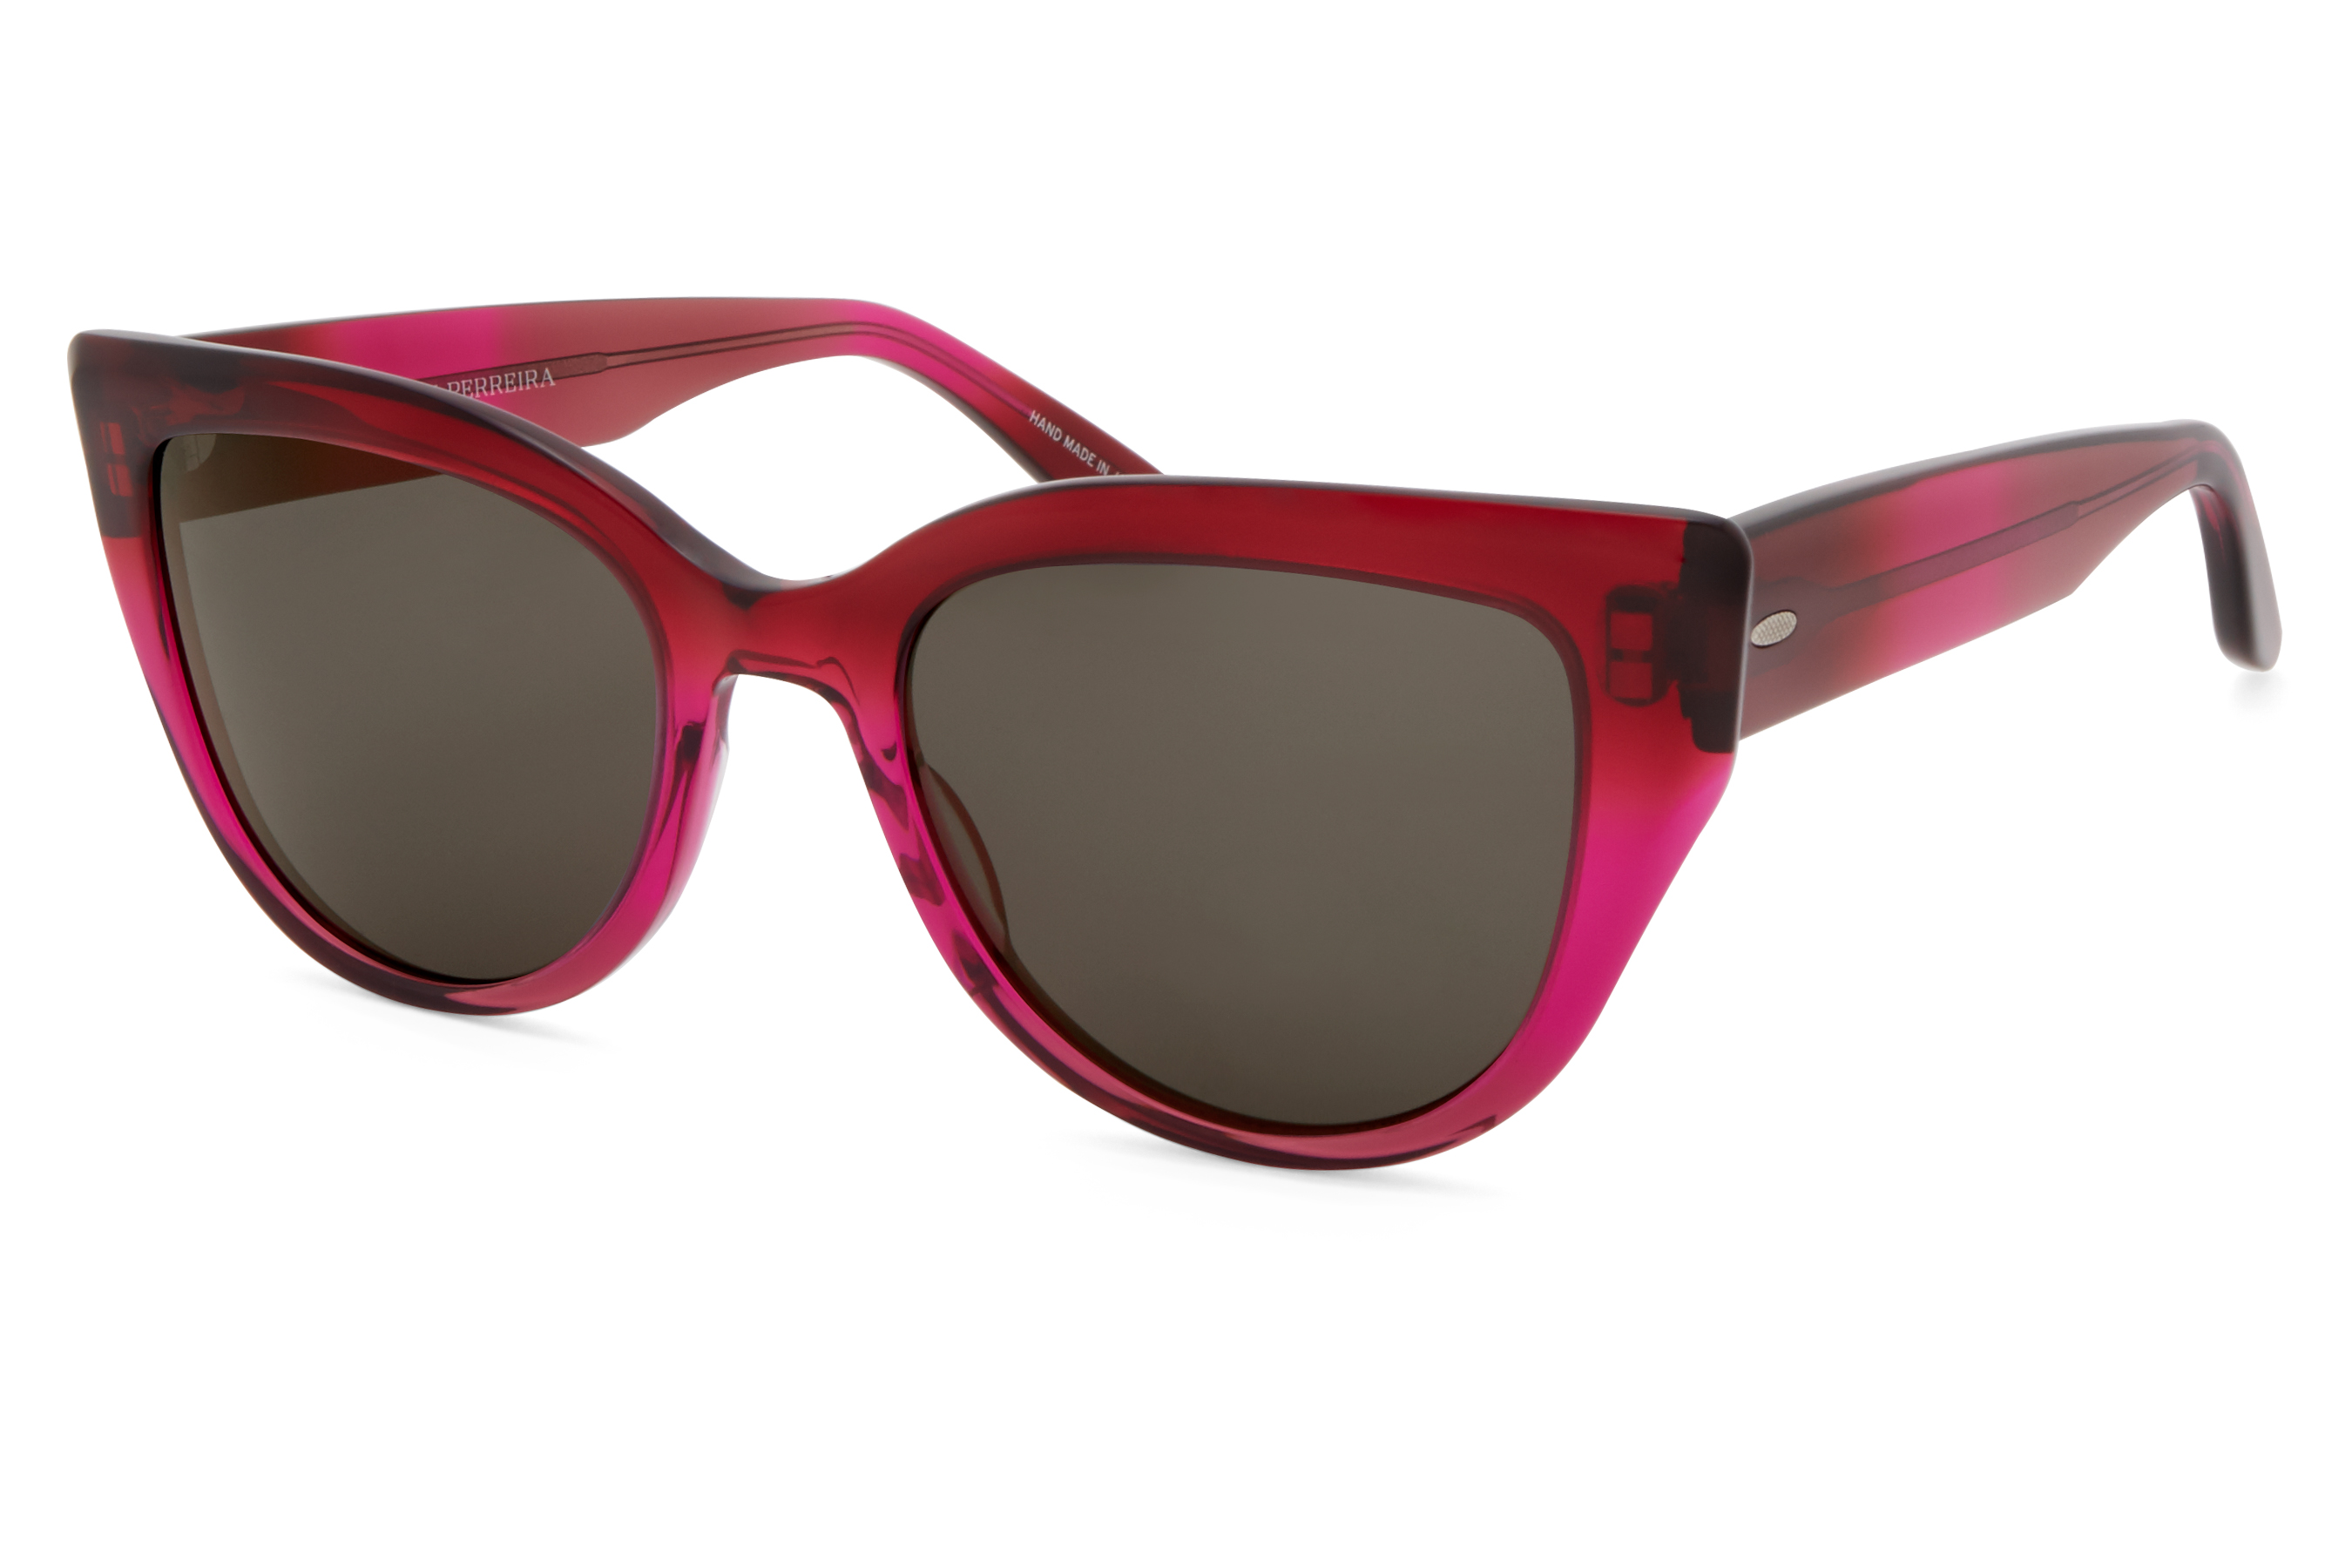 Barton Perreira cat-eye sunglasses